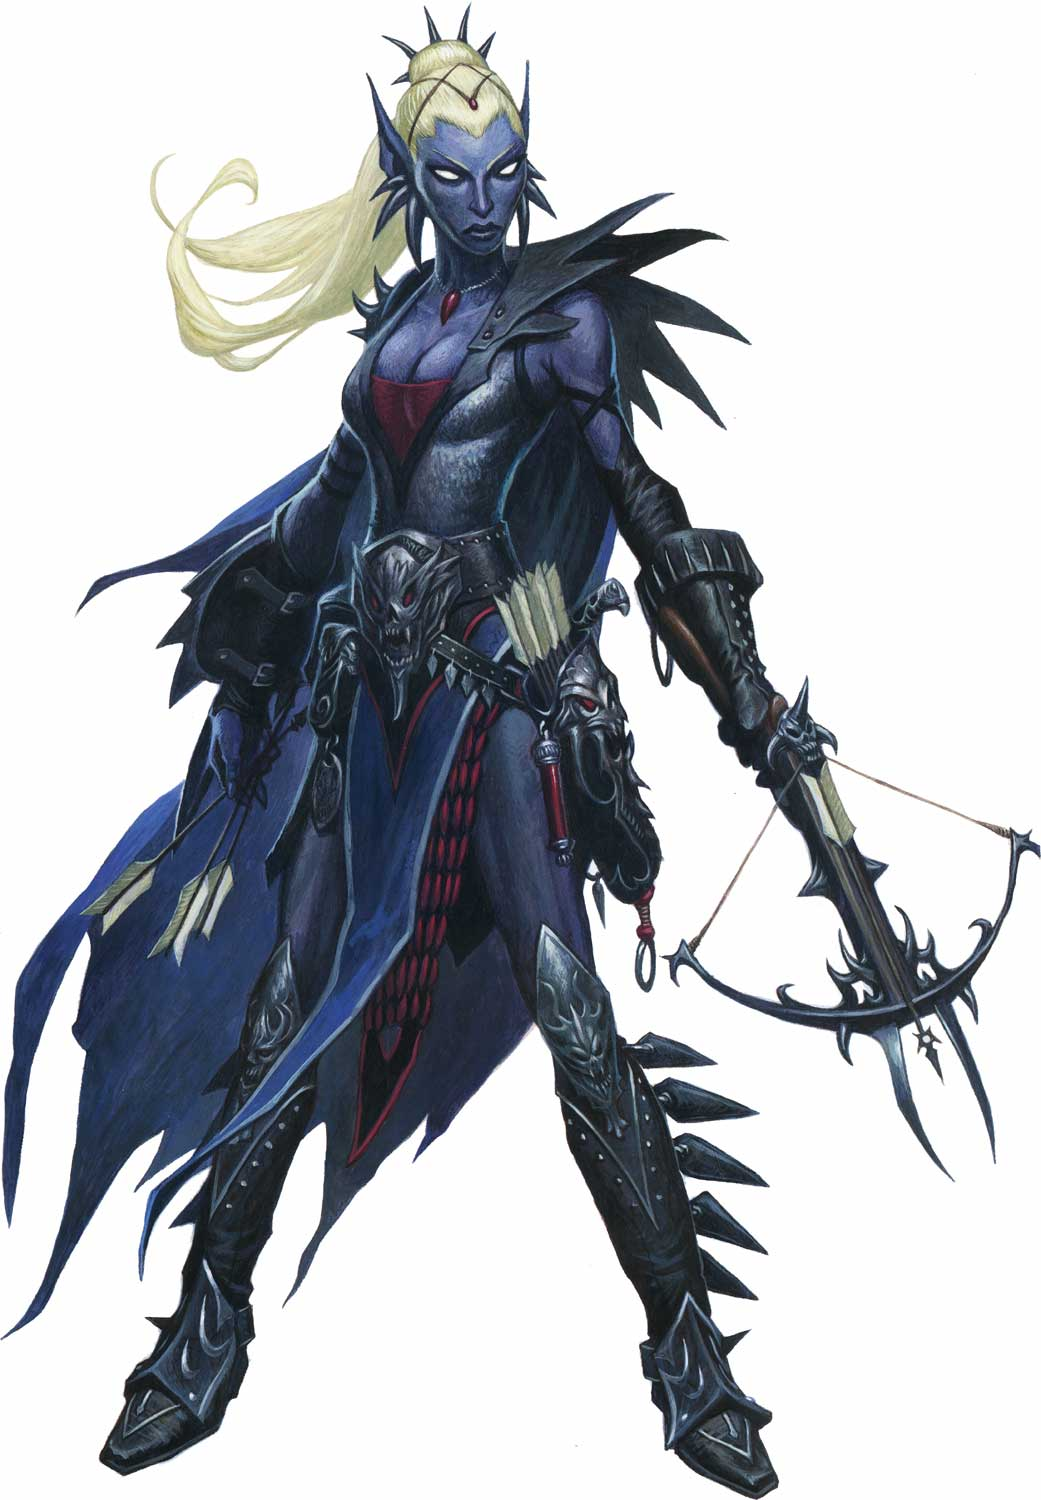 d&d dark elf Drow, da Pathfinder Pathfinder Roleplaying Game, Core Rulebook (2009) © Paizo Publishing, Wizards of the Coast & Hasbro